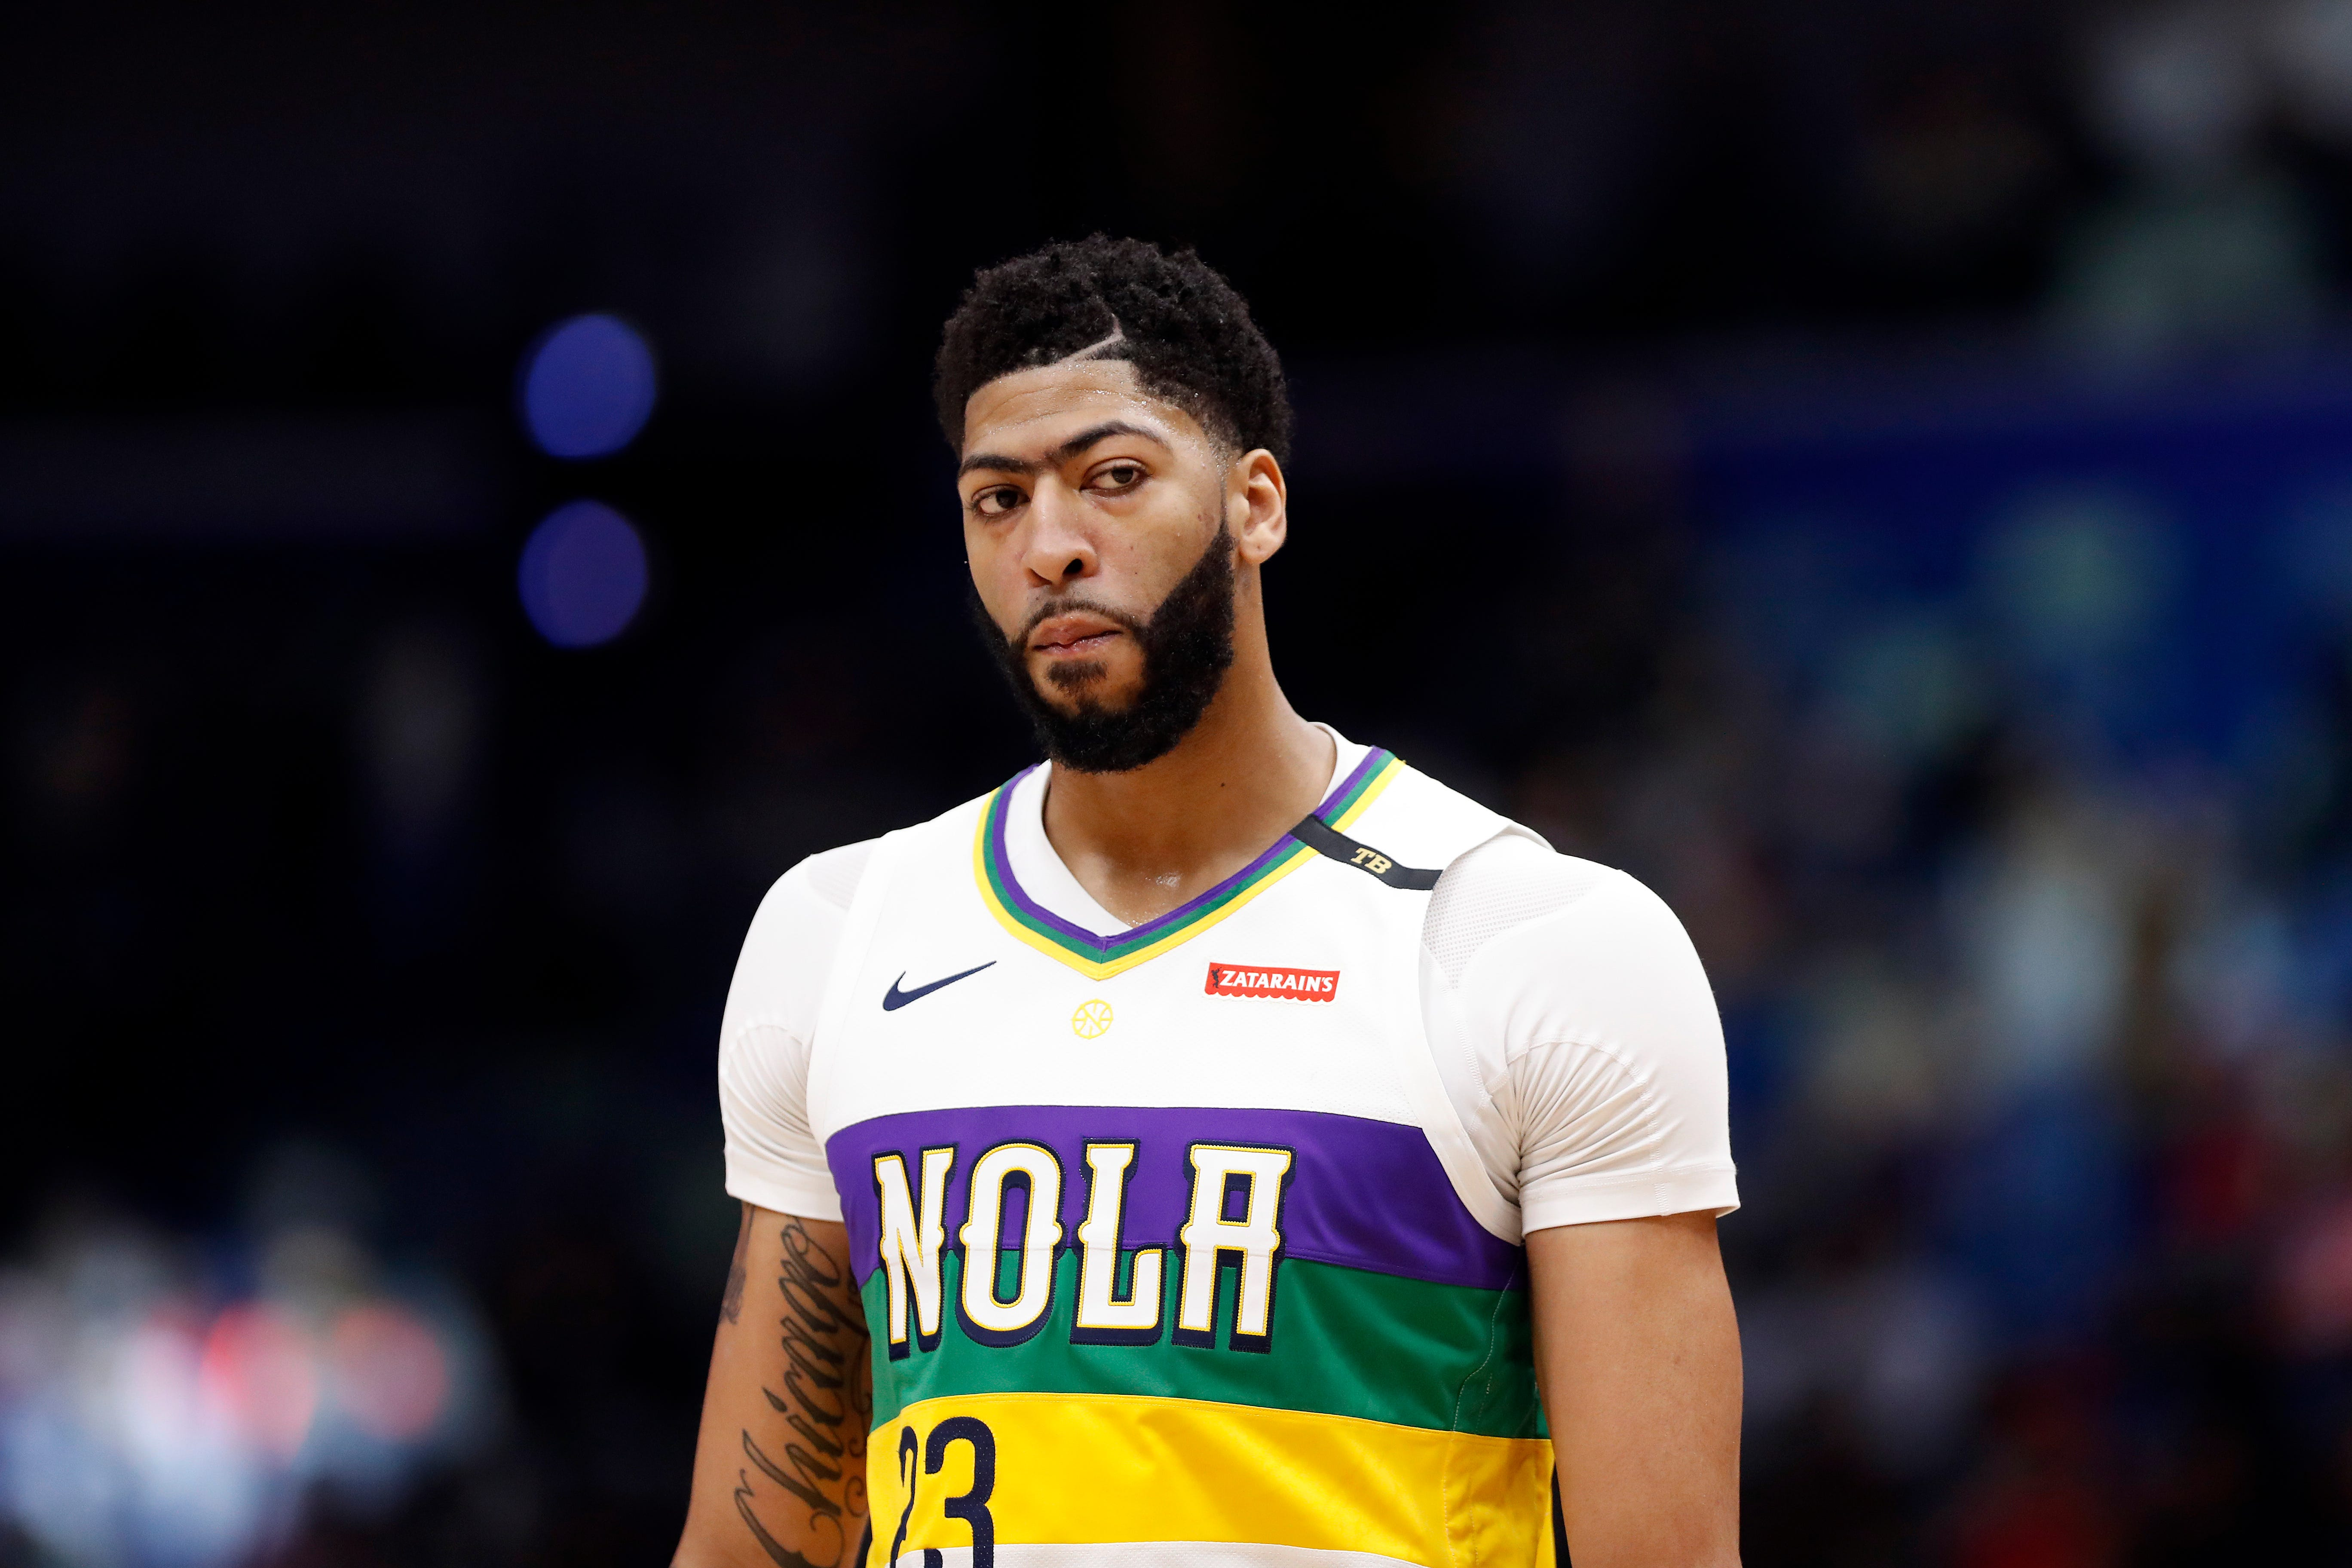 Assigning blame for the Anthony Davis situation